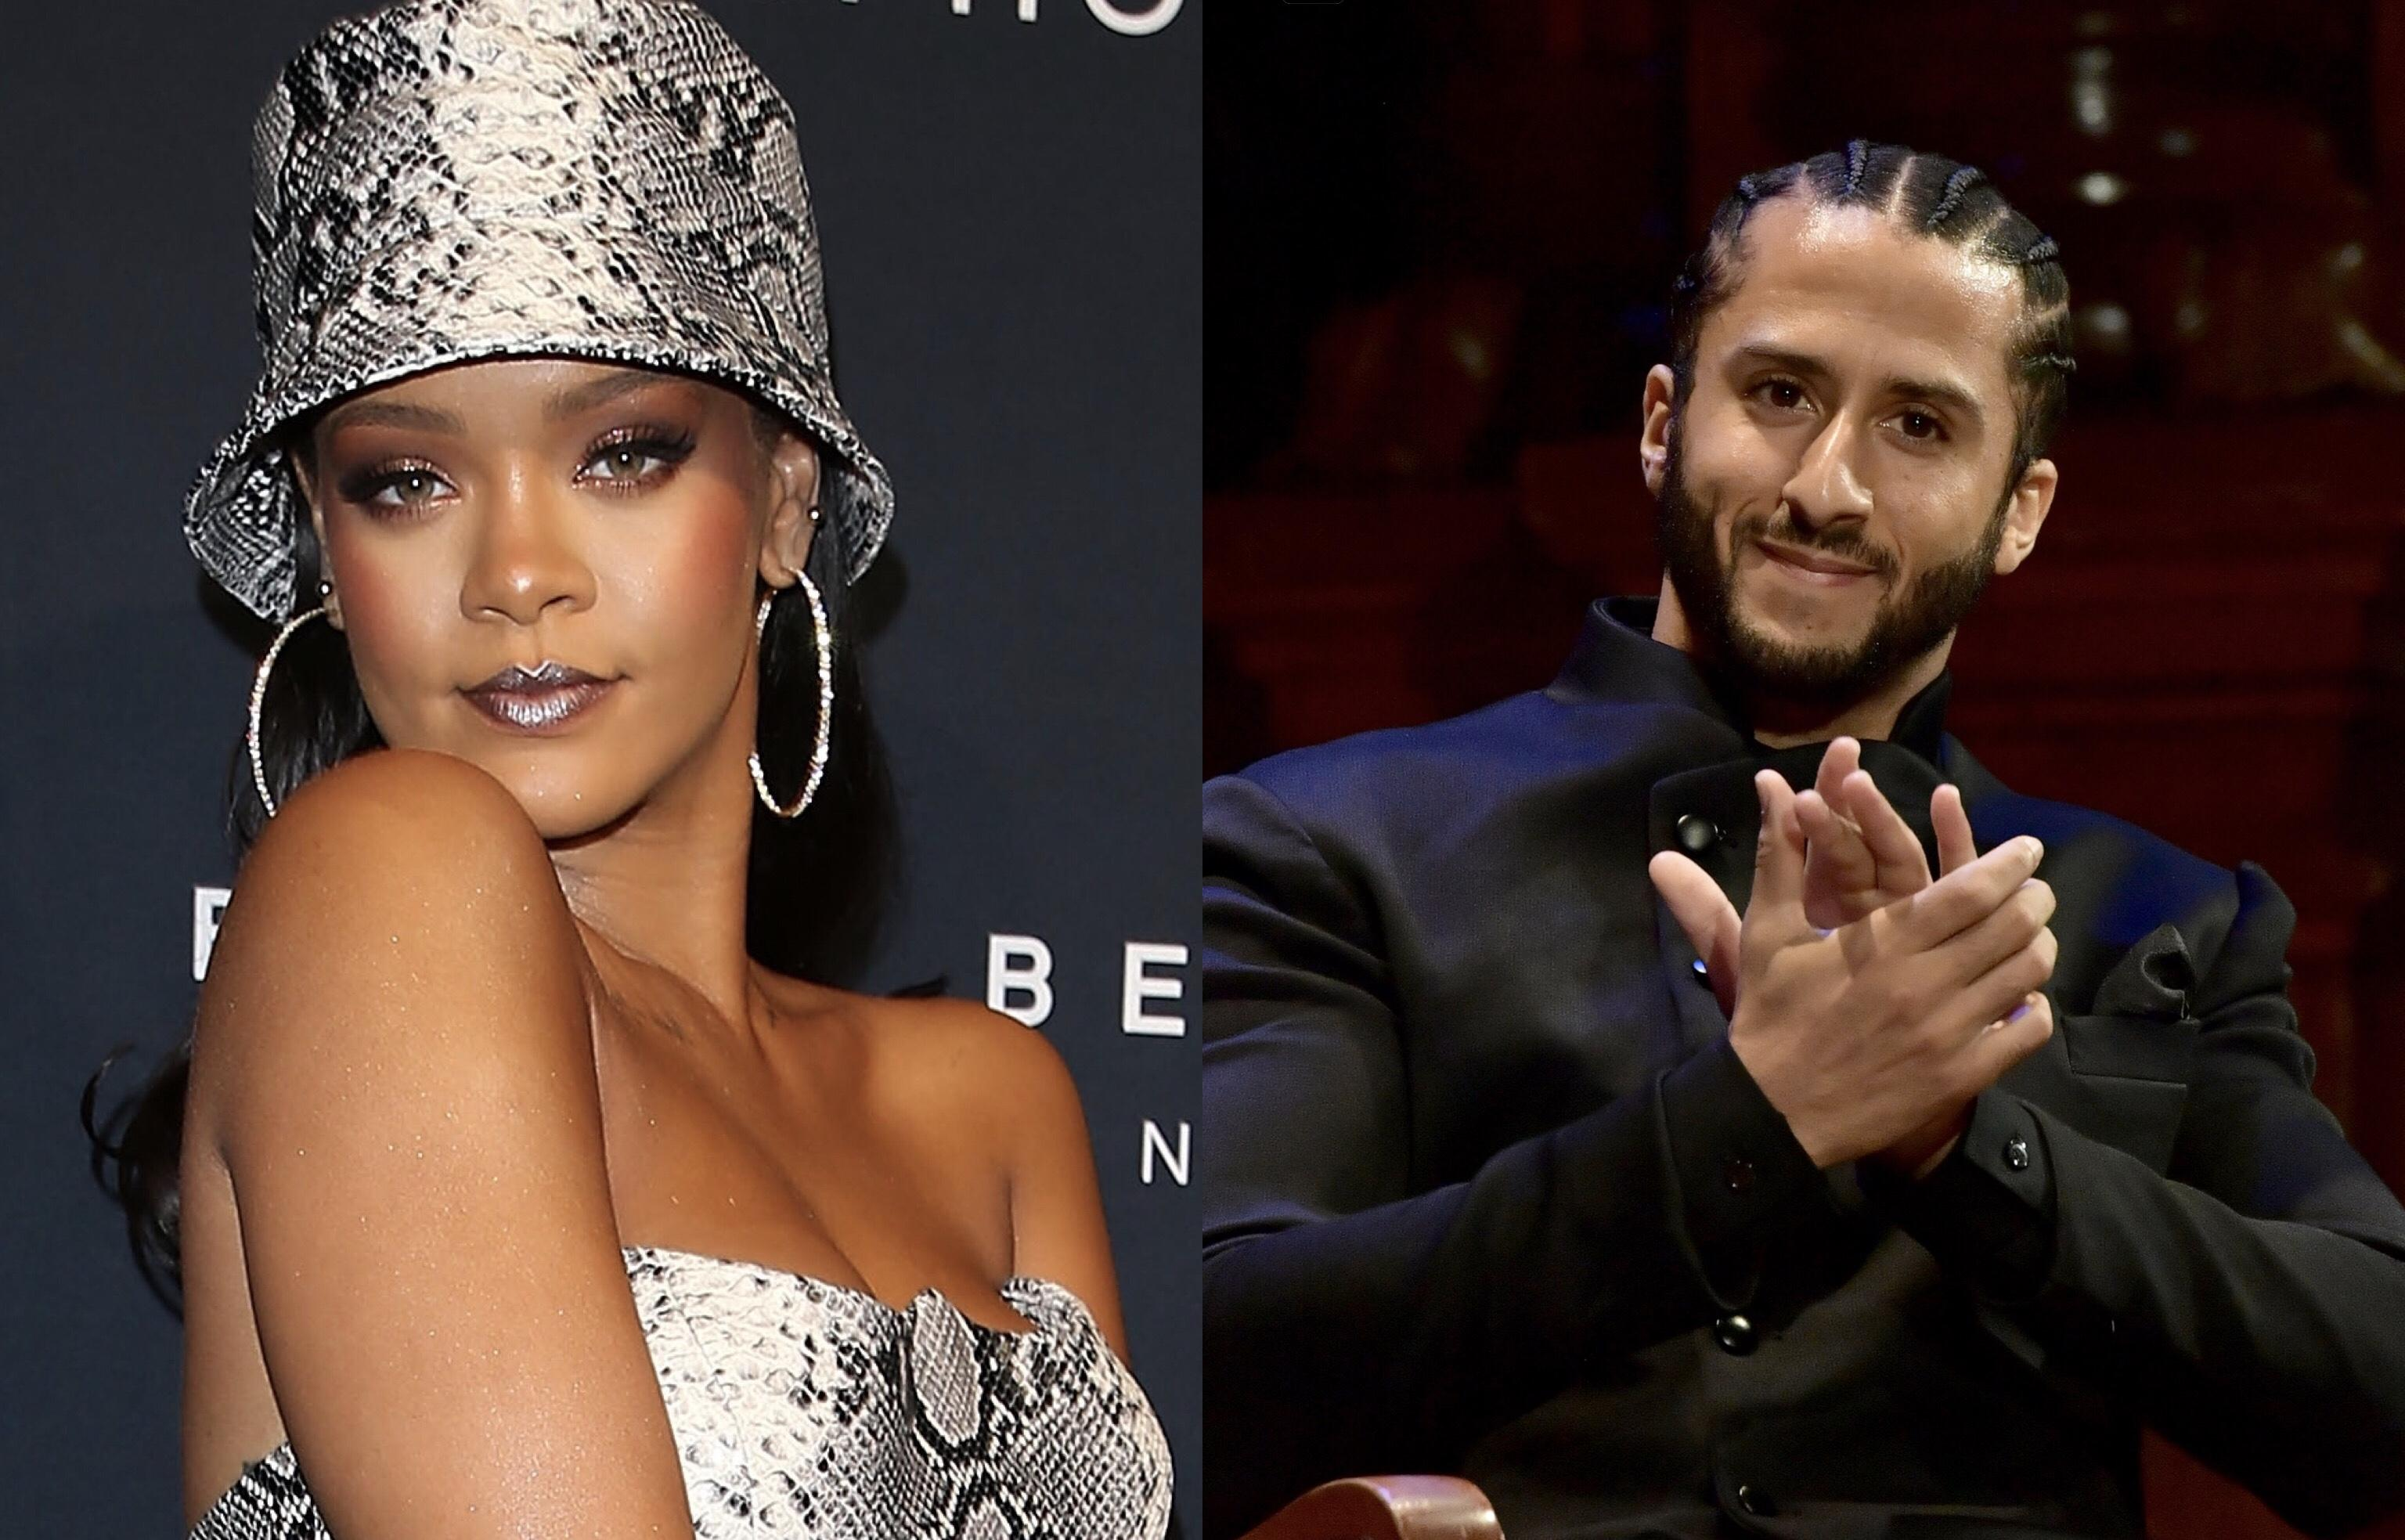 Rihanna Declined To Headline The Super Bowl To Stand With Colin Kaepernick